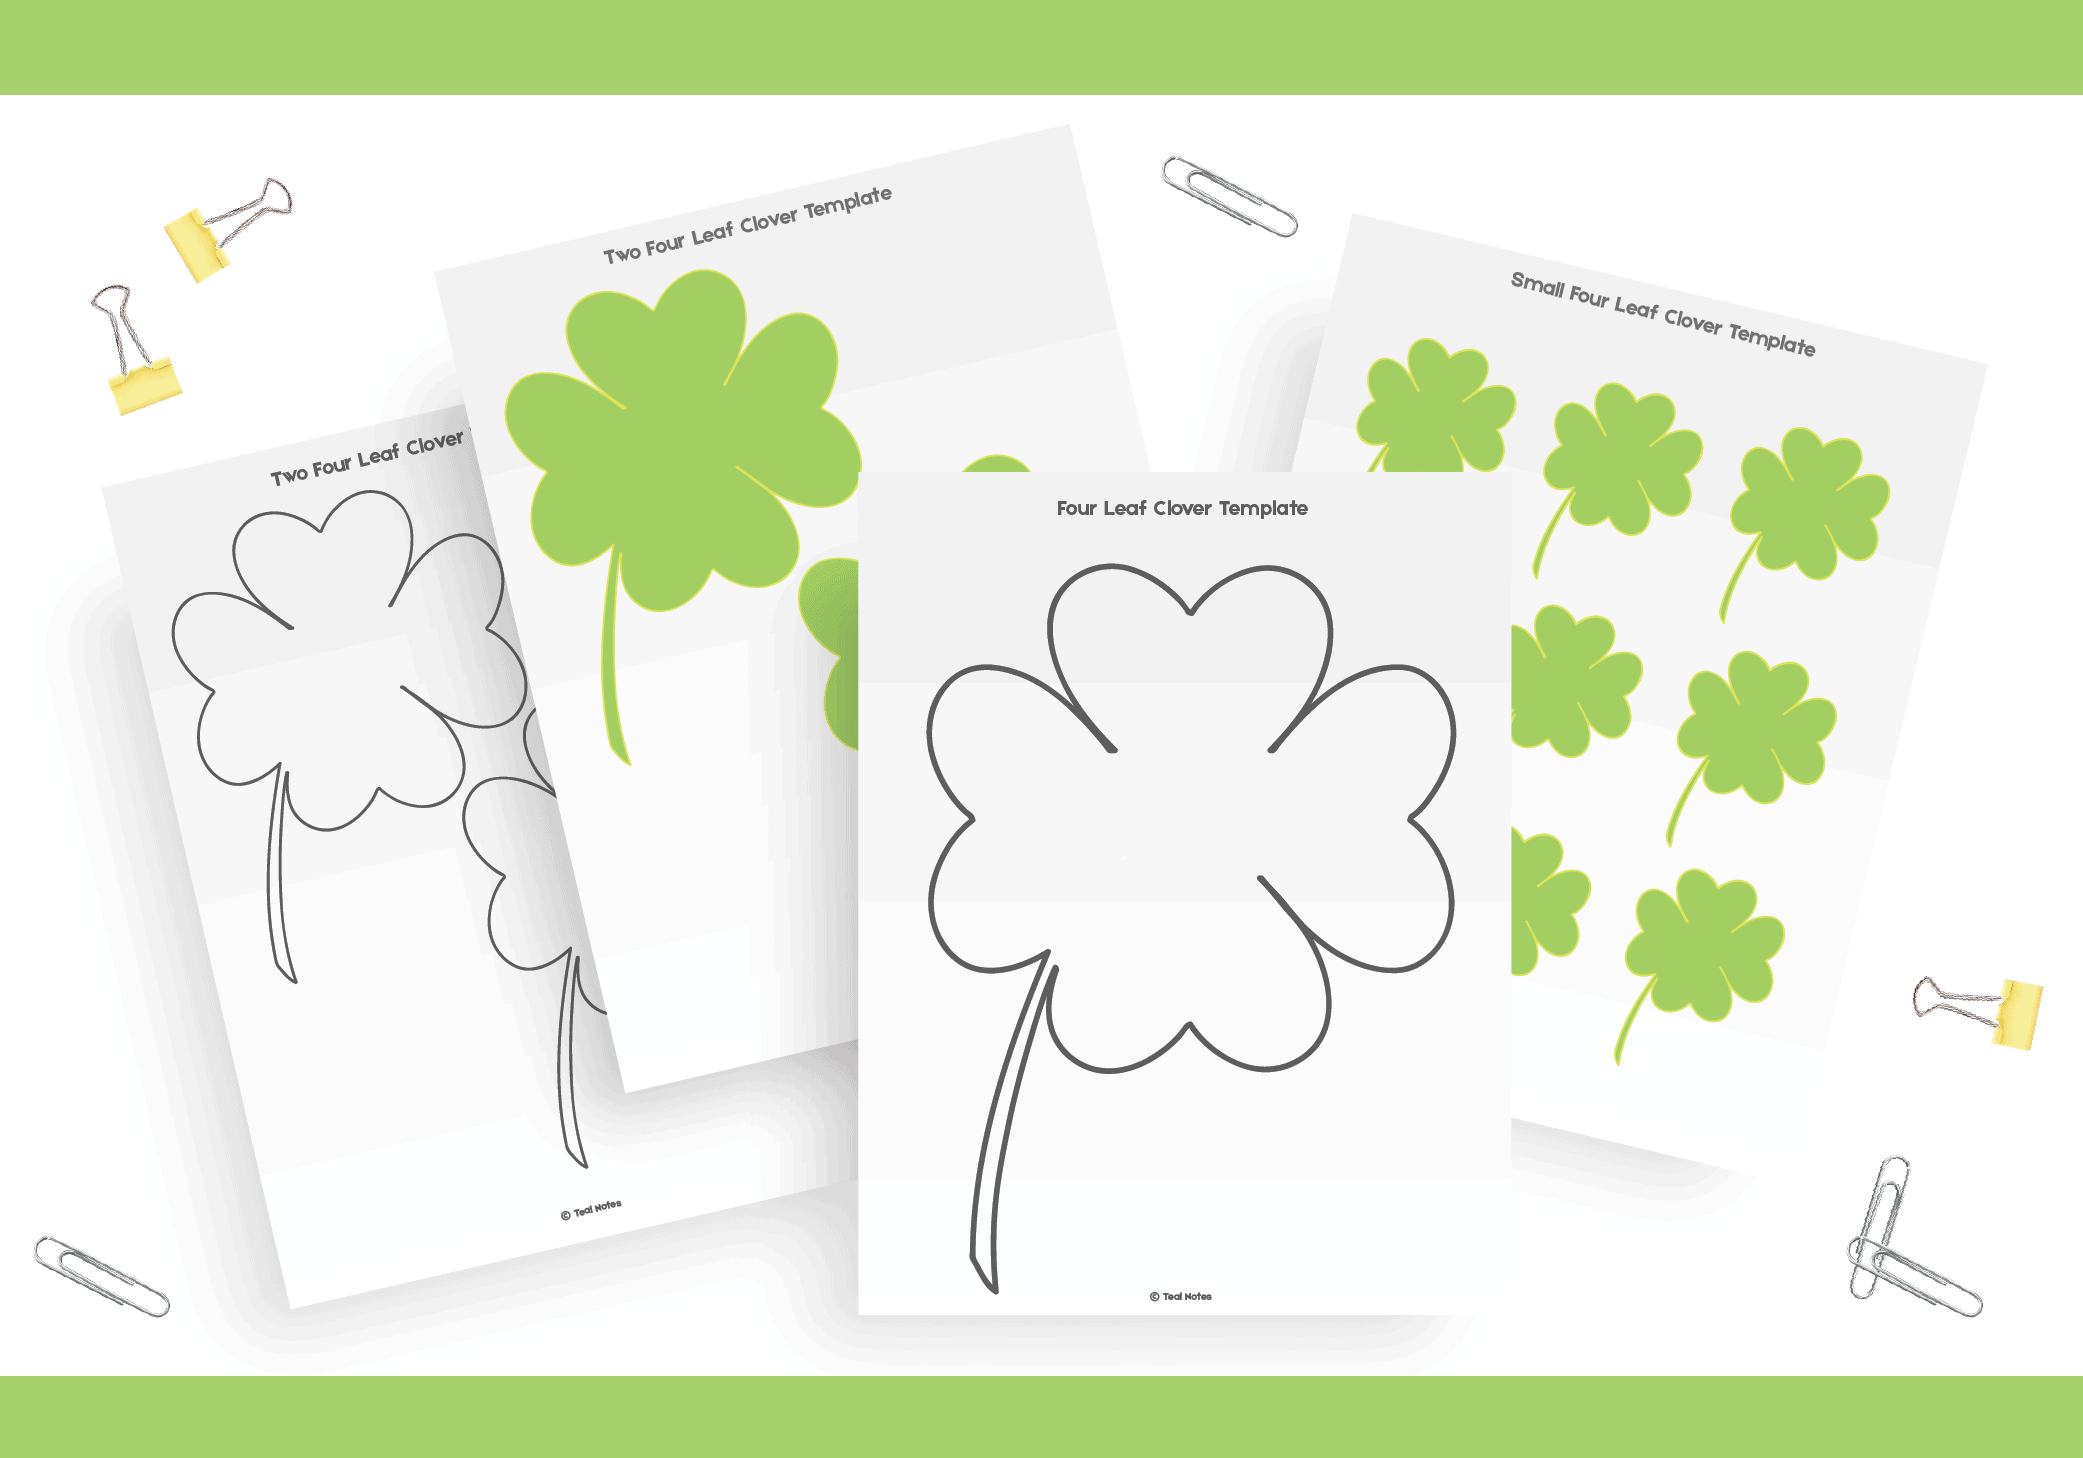 picture about Printable Four Leaf Clover called 4 Leaf Clover Template: Totally free Shamrock Template Printable